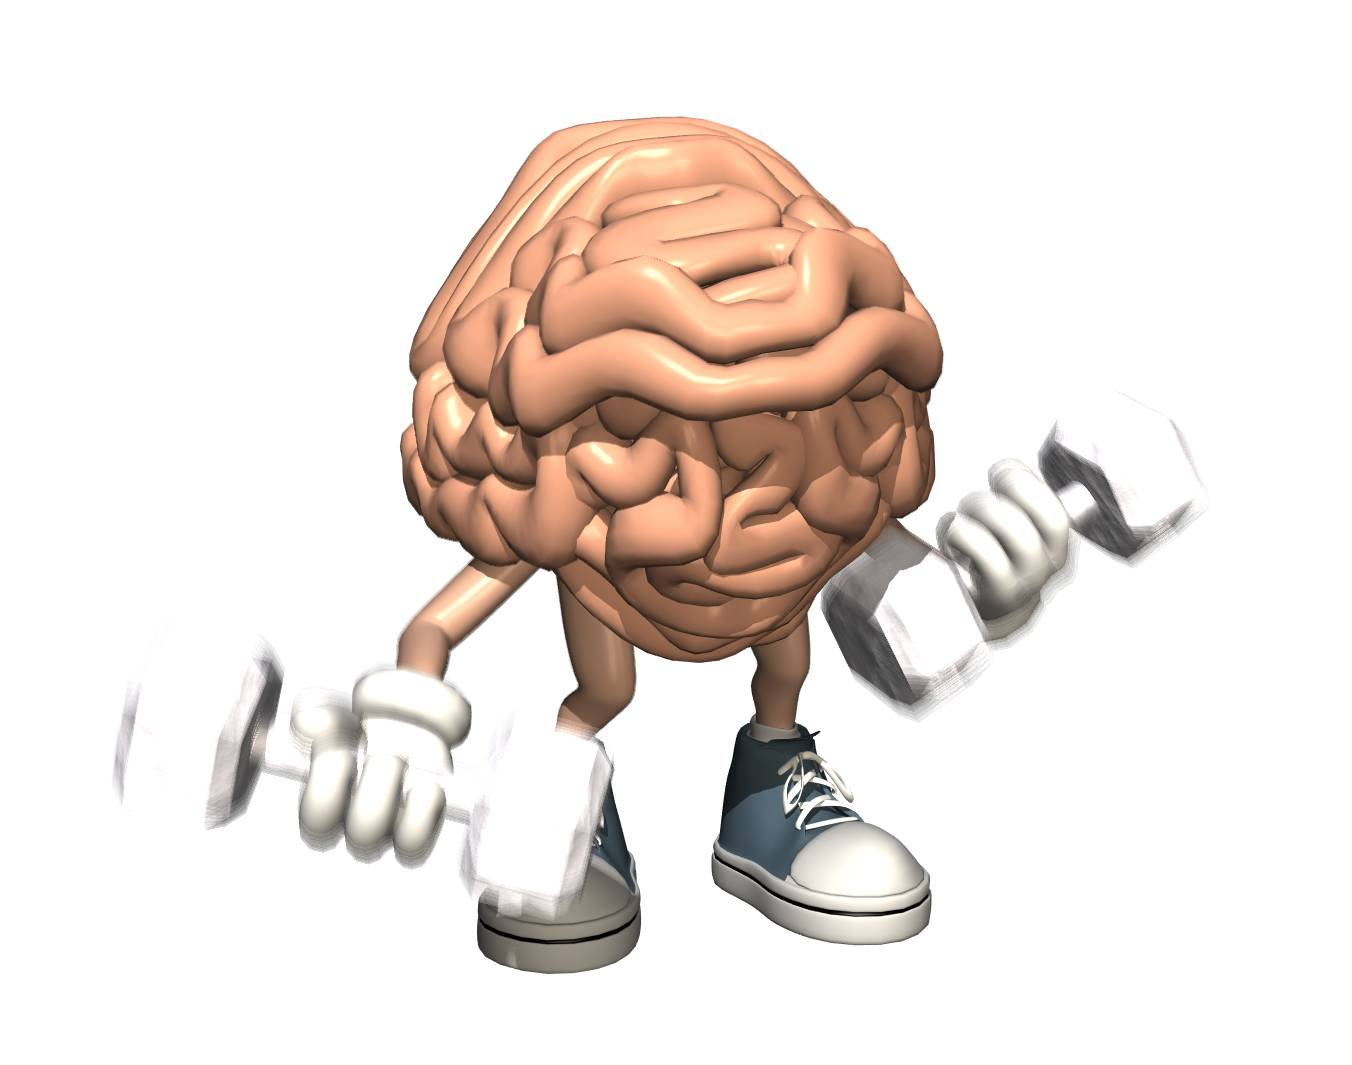 Funny Muscular Brain Weightlifting Picture